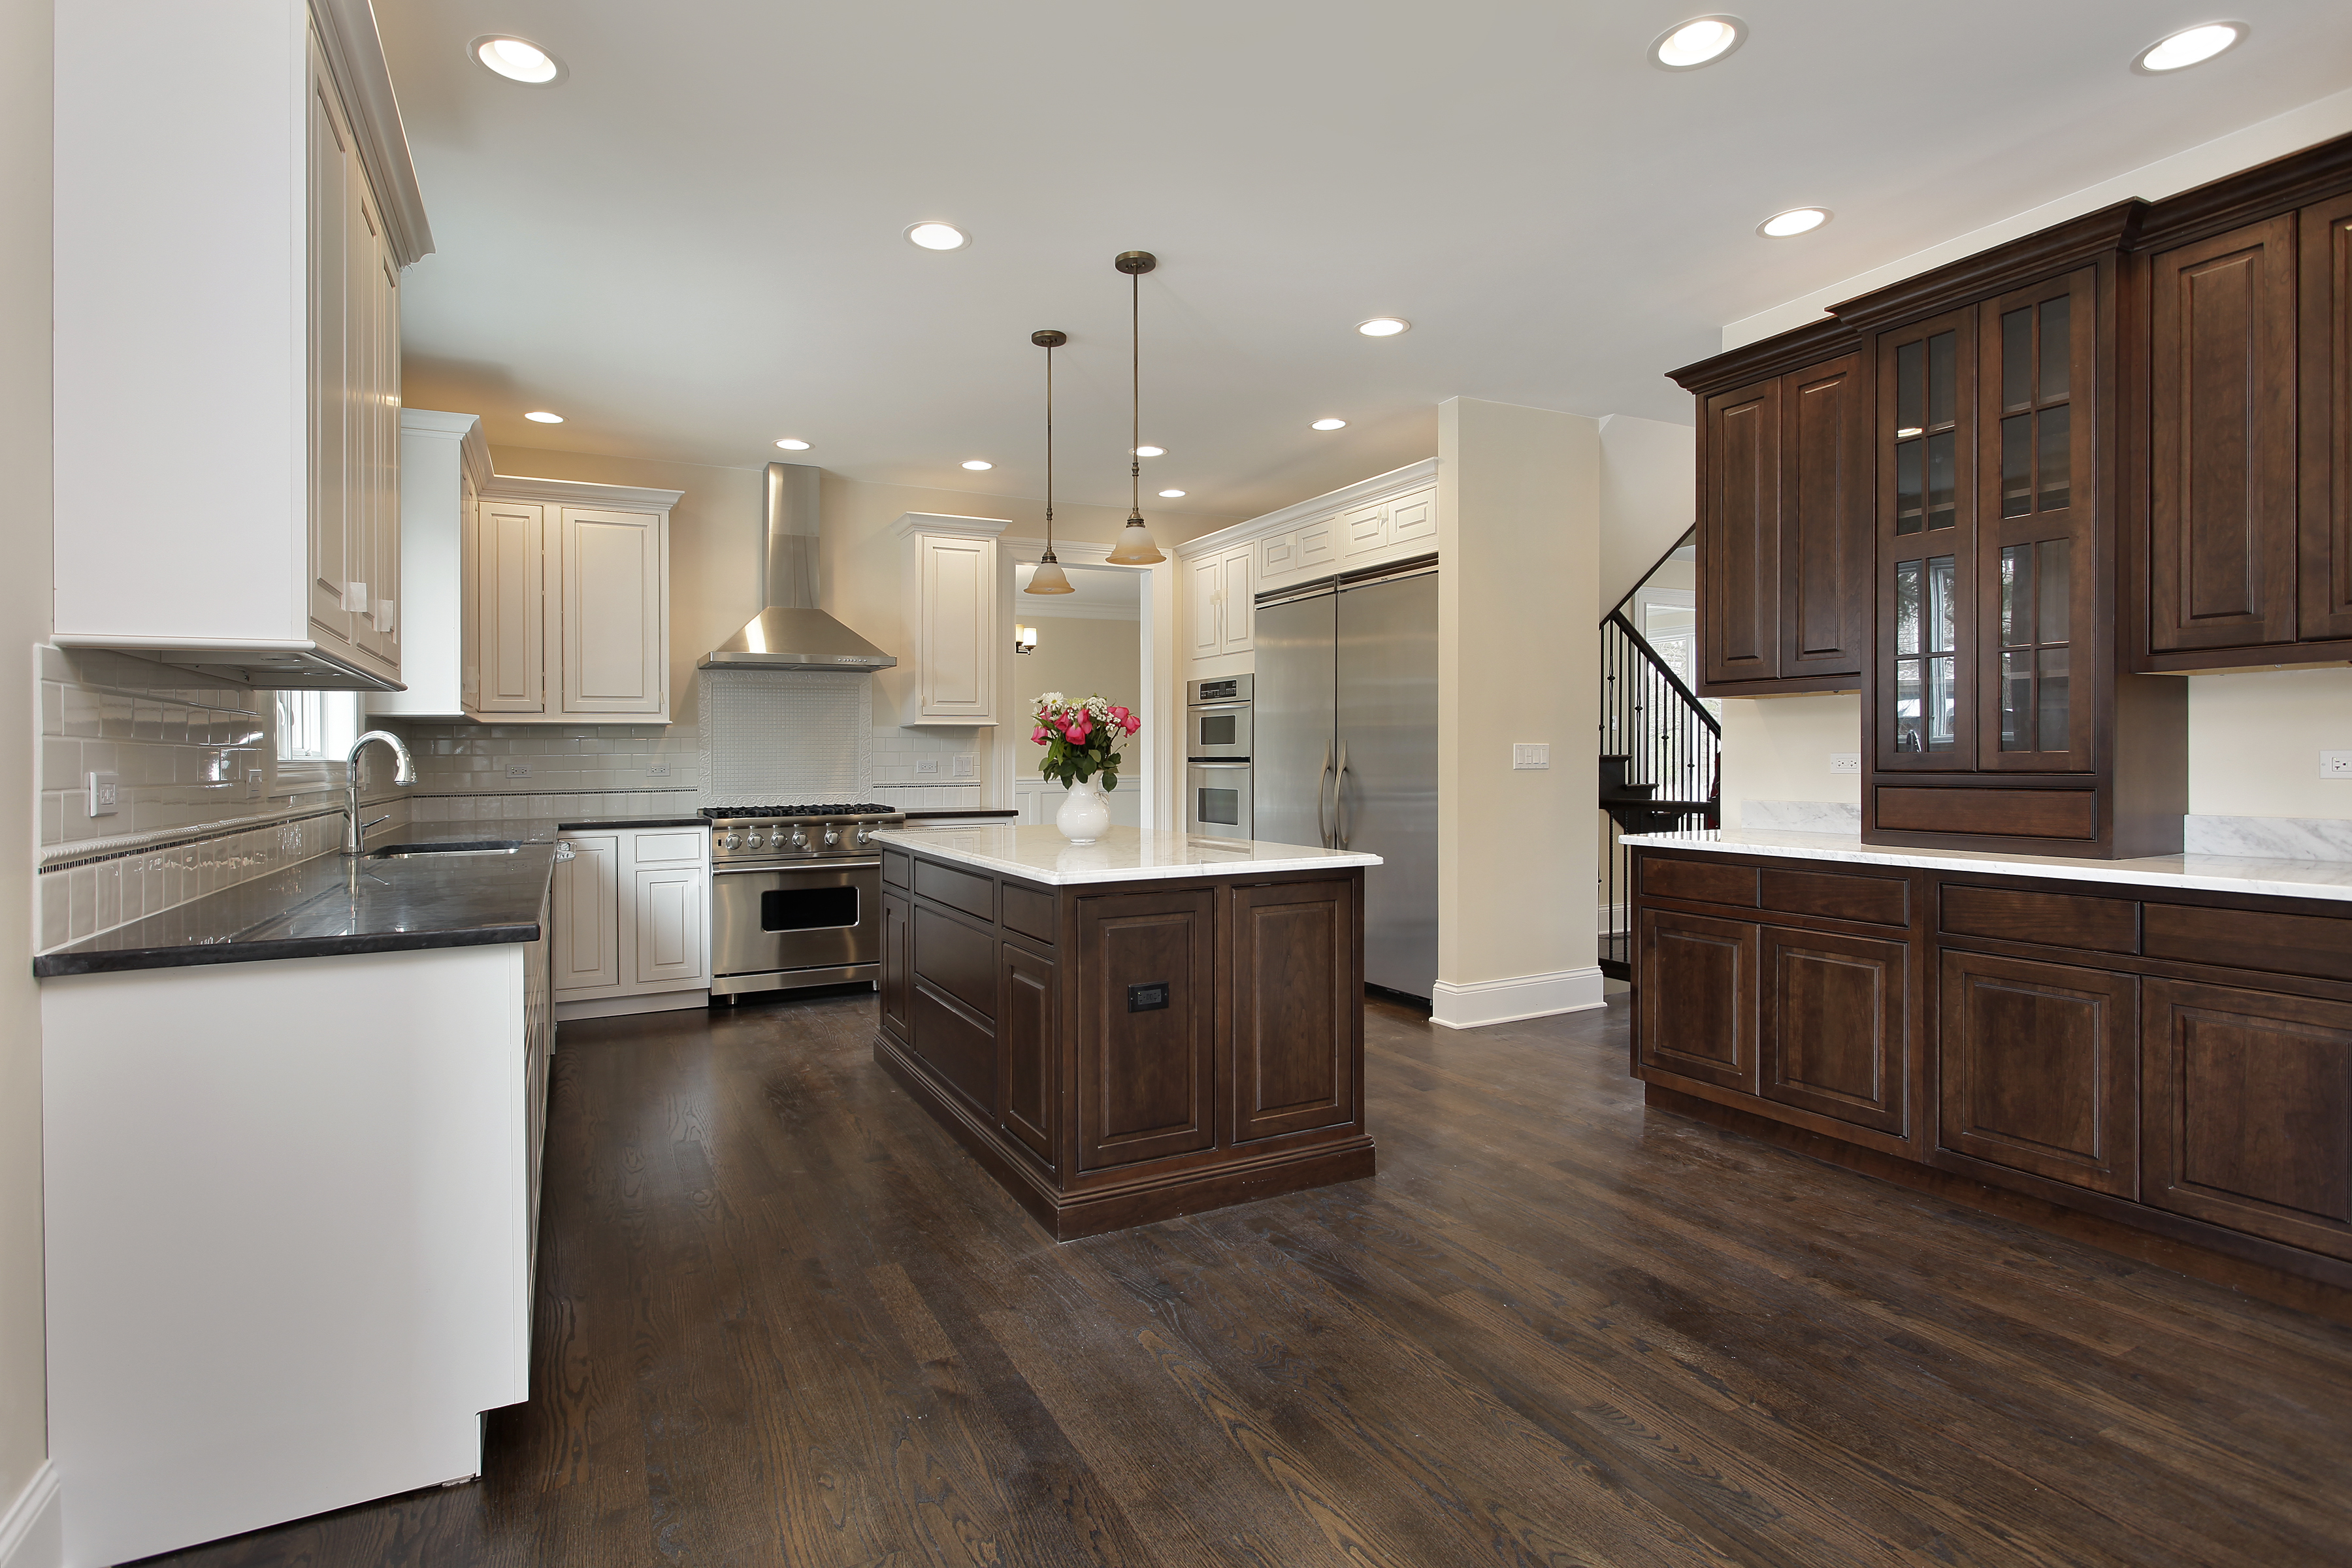 bigstock-Kitchen-in-new-construction-ho-54260810